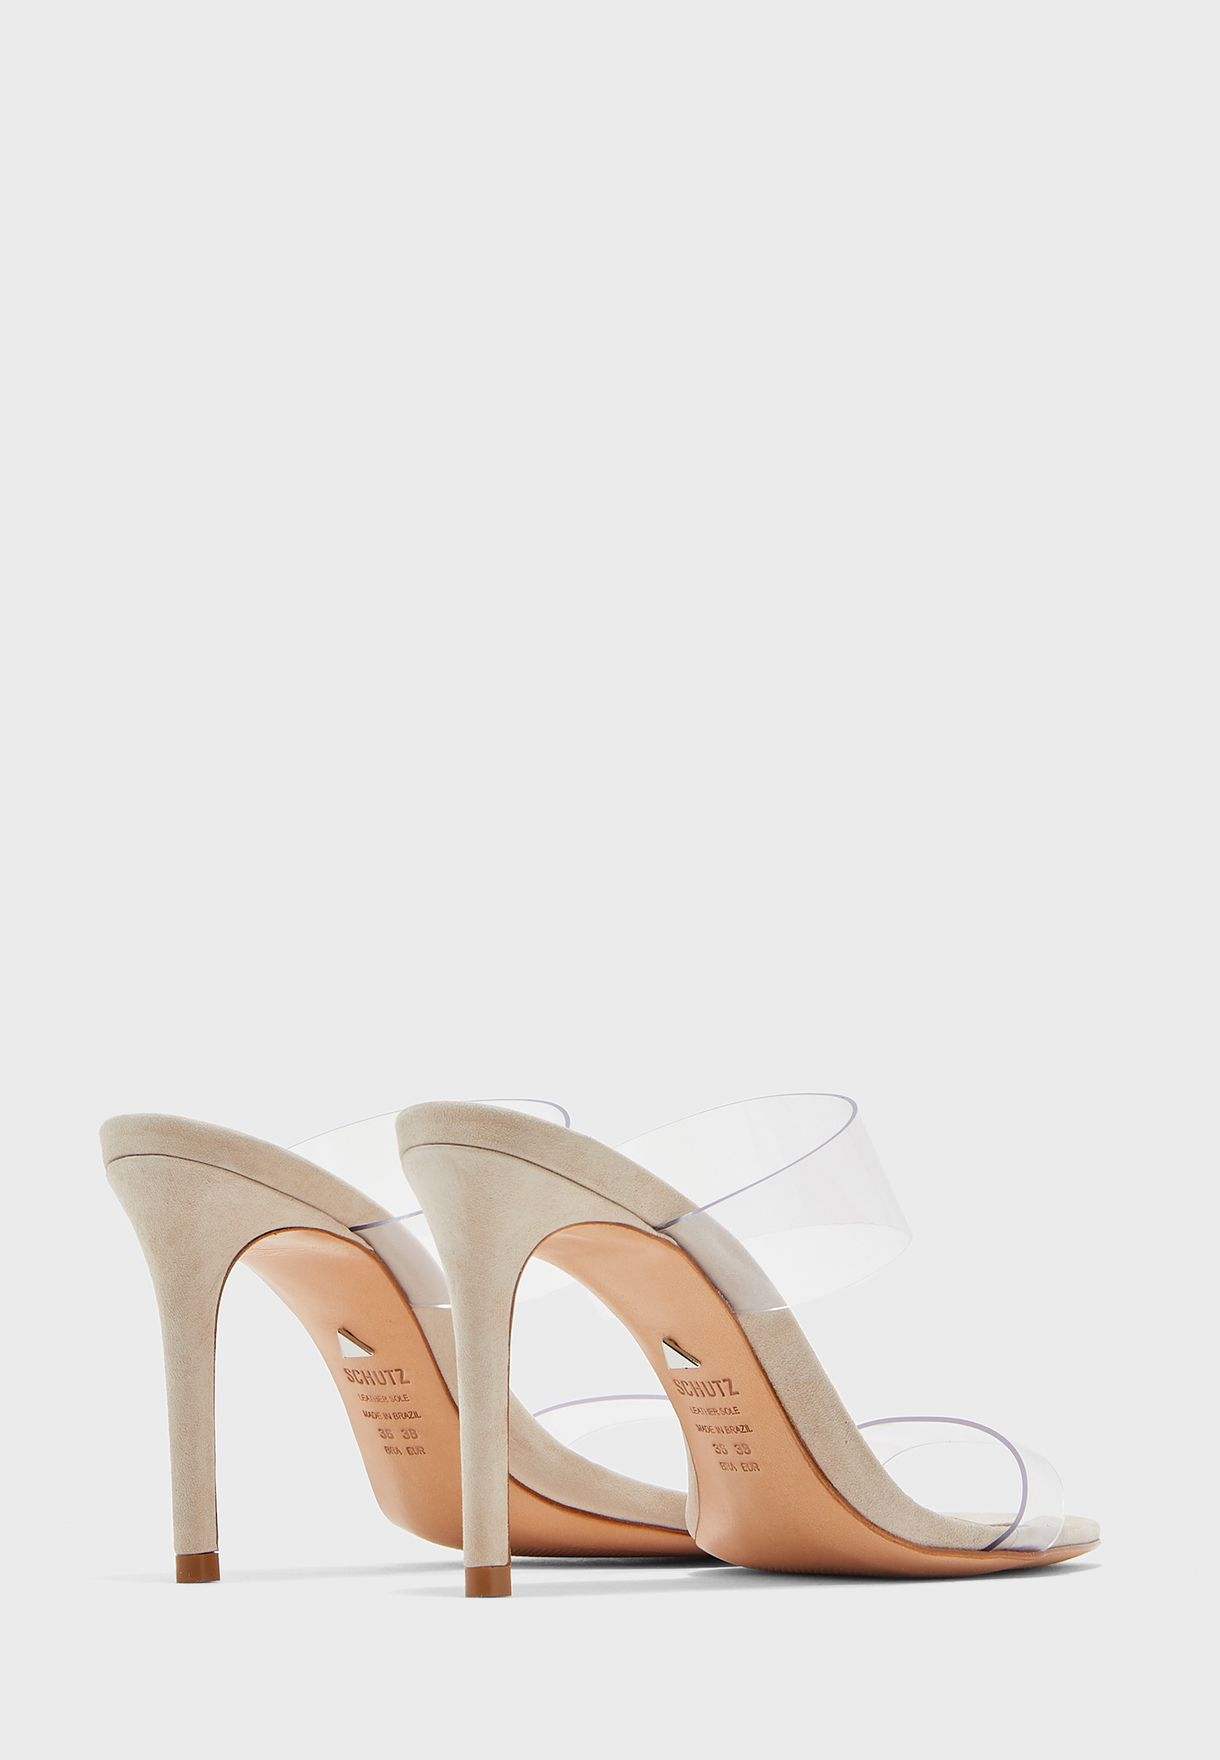 Sheer Strap Mid Heel Sandals